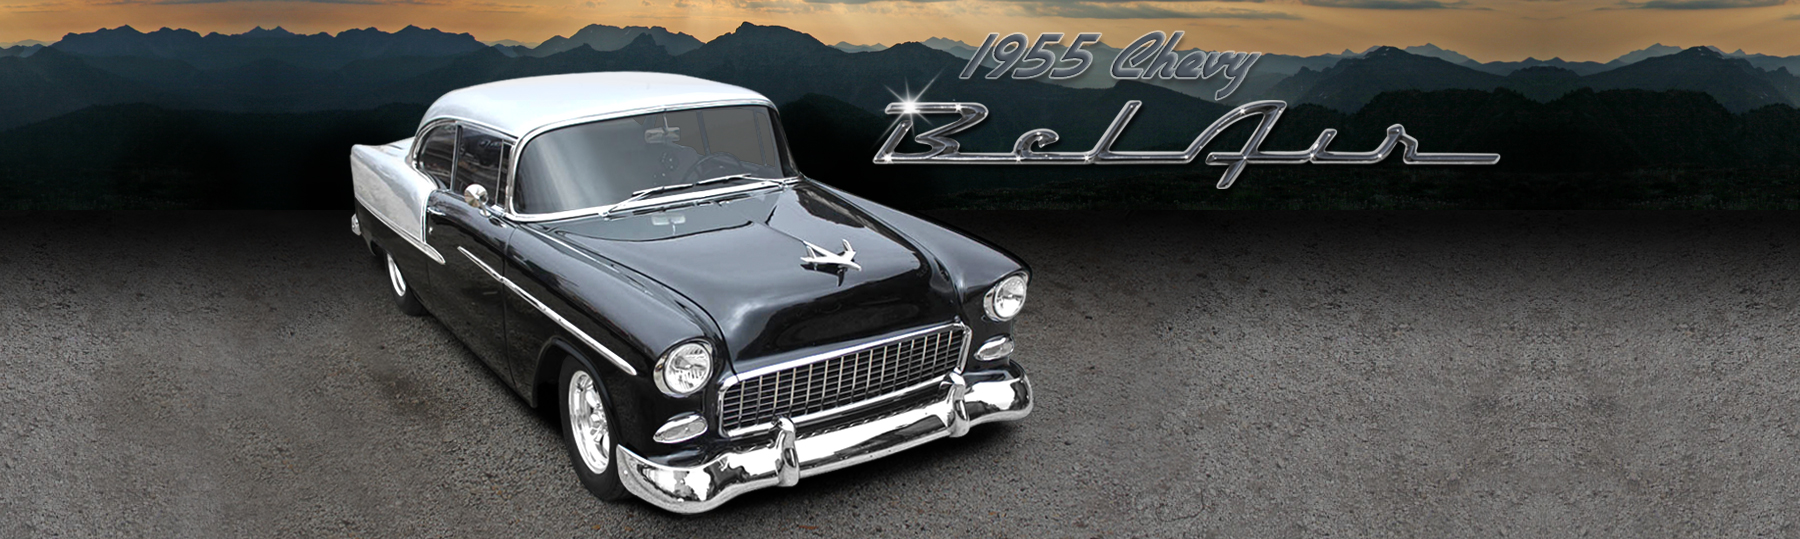 Fineline-55-Bel-Air-header-1